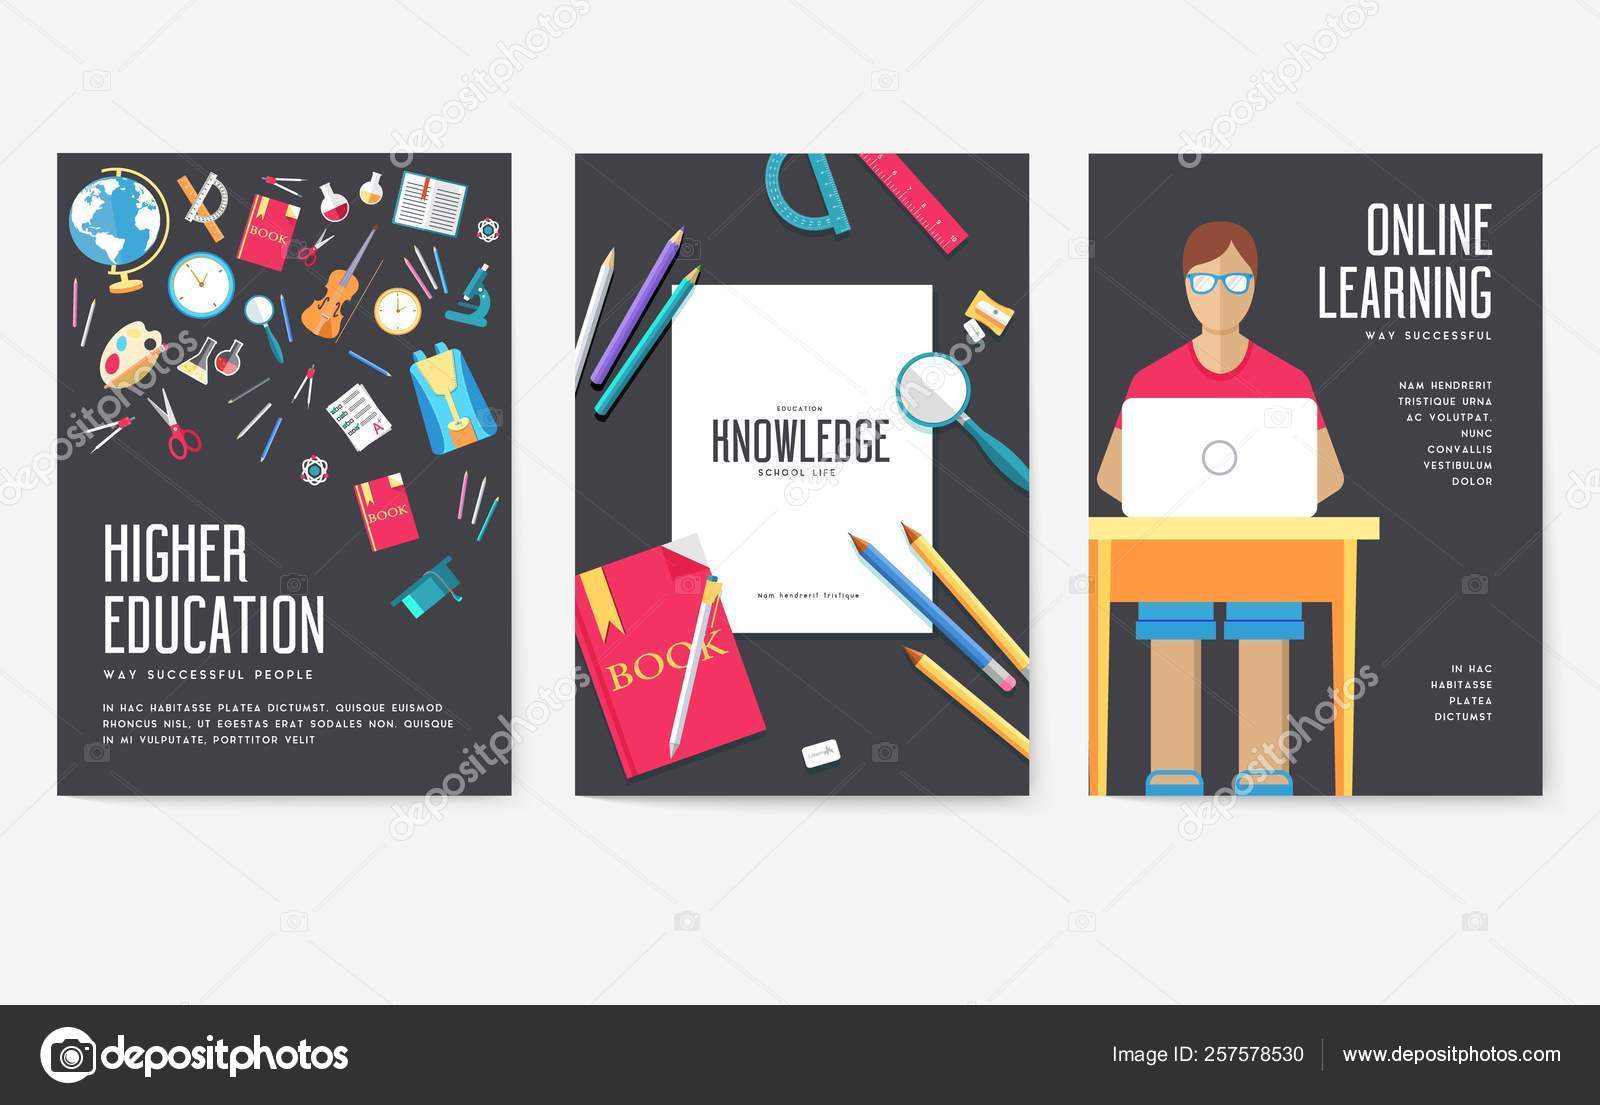 Back To School Information Cards Set Student Template Of Flyear Magazines Posters Book Cover Banners College Education Infographic Concept Background Layout Illustrations Modern Pages Stock Vector C Chocostar 257578530